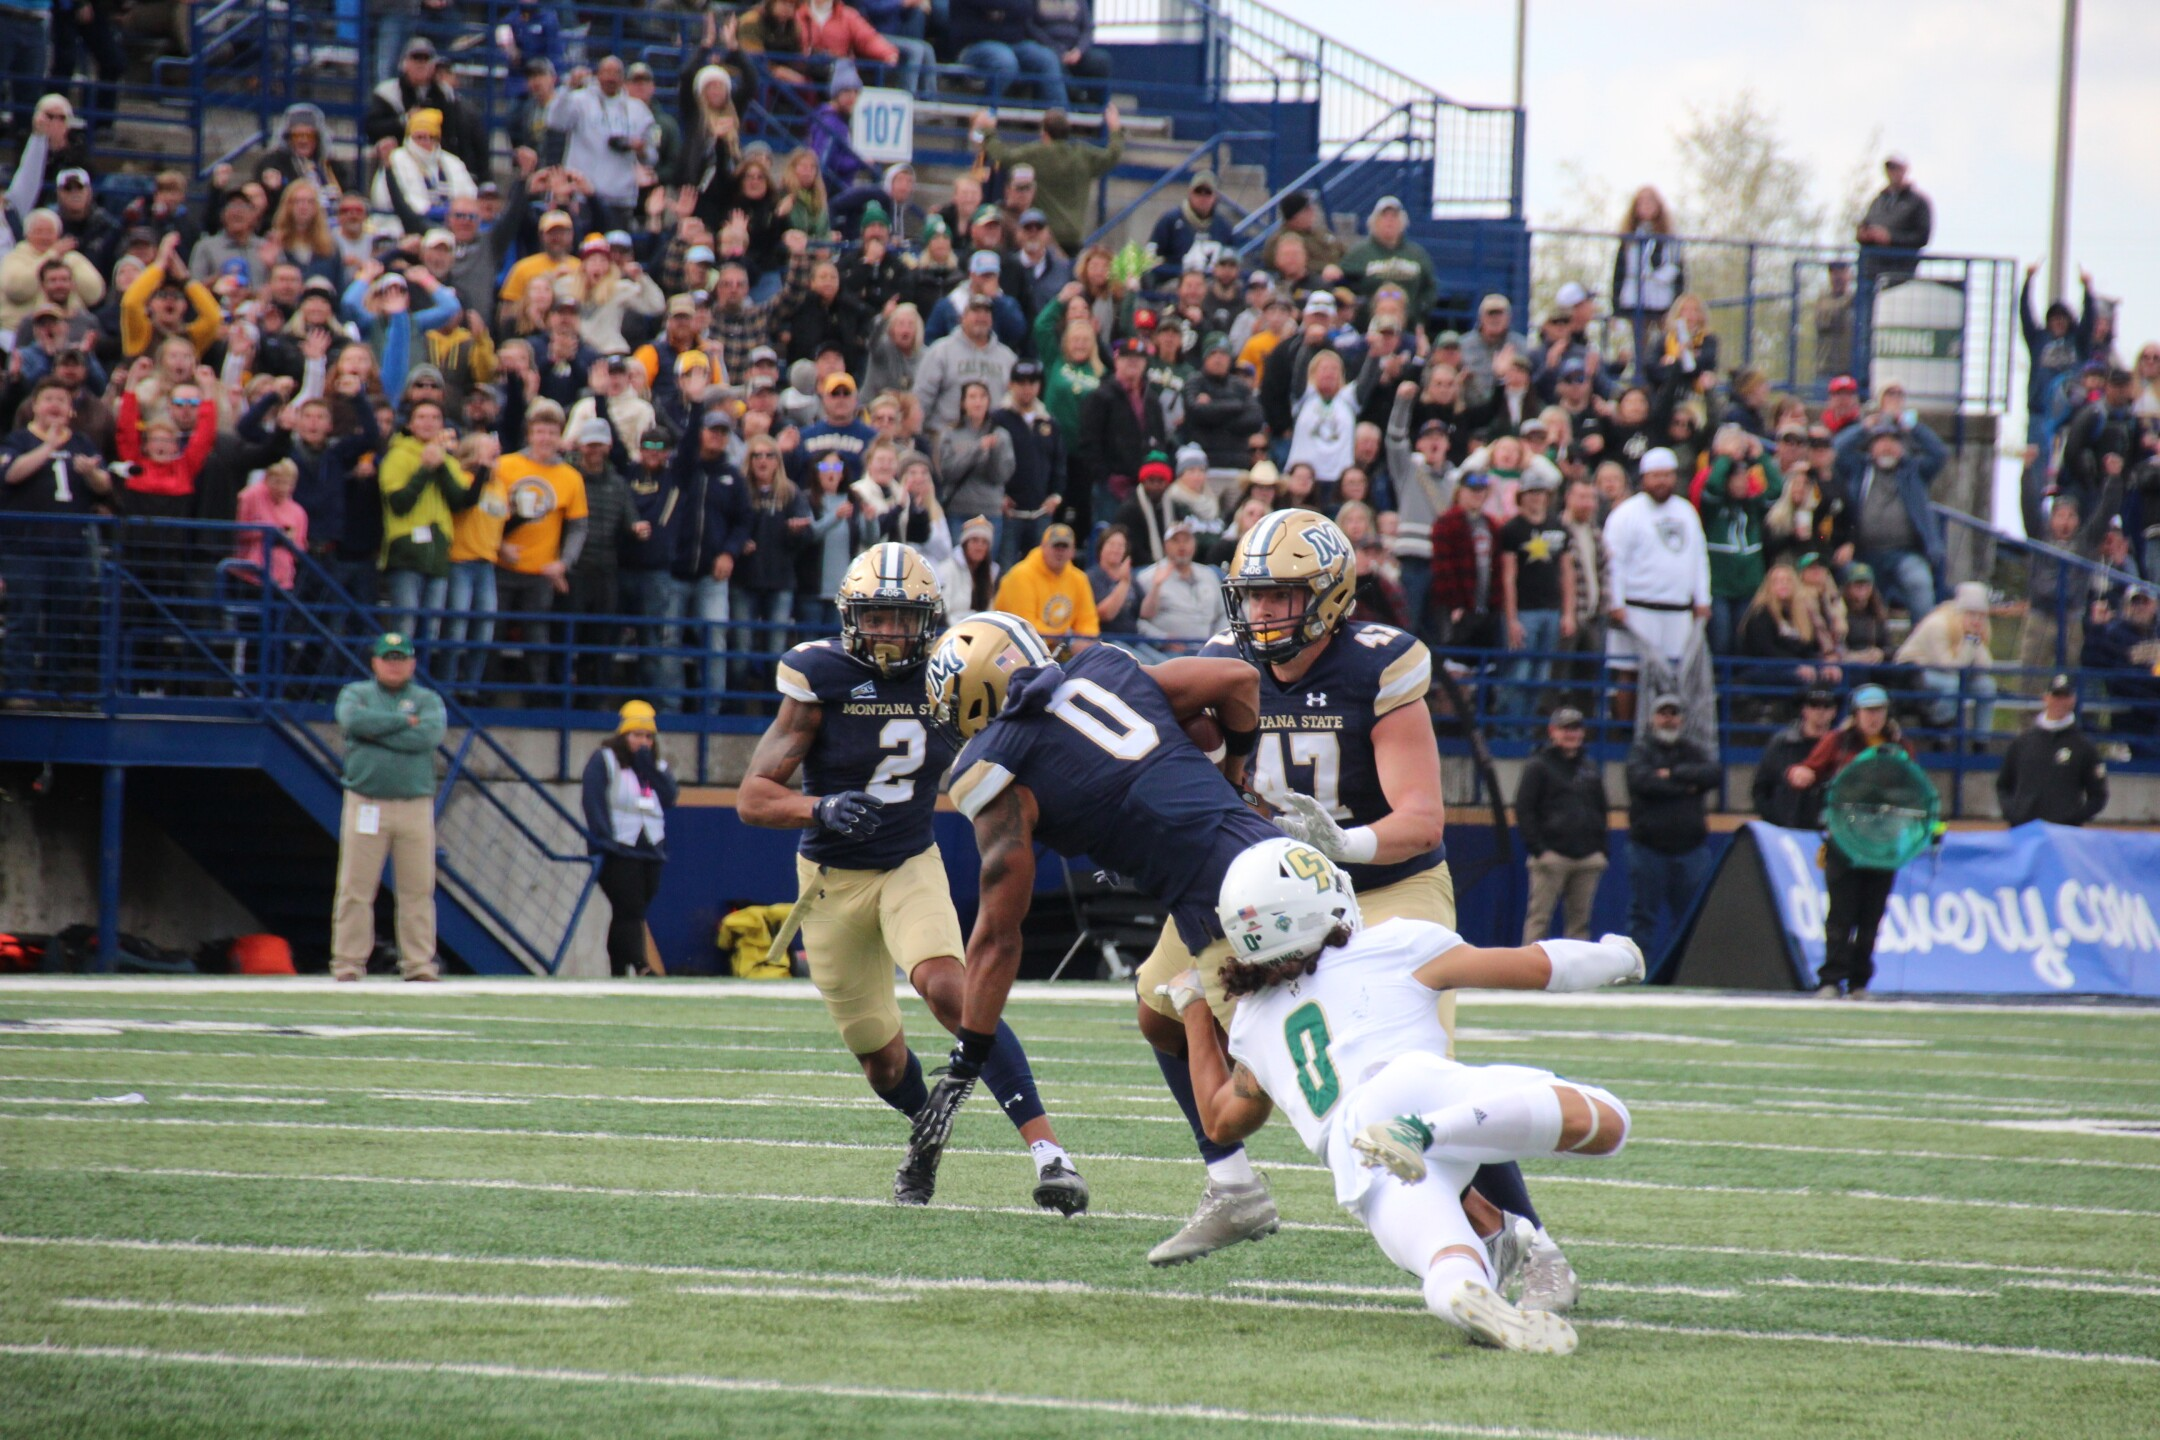 DB Tyrel Thomas returns a fumble in the first half